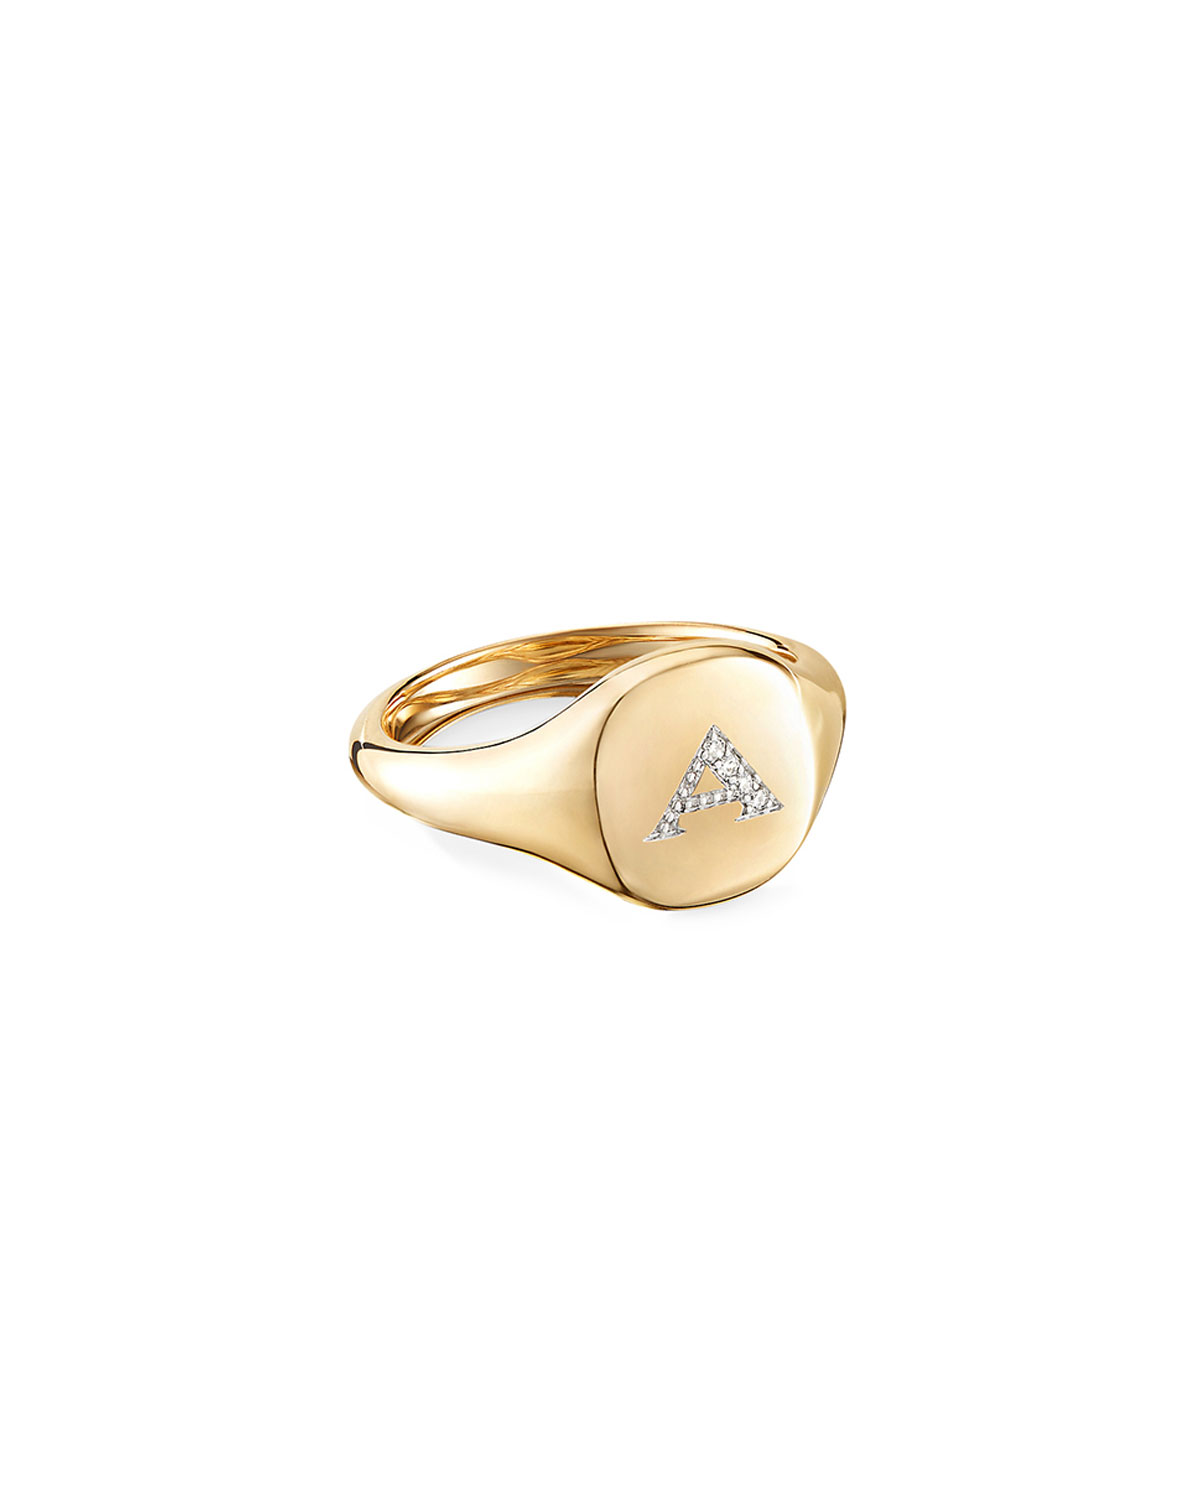 David Yurman Mini DY Initial A Pinky Ring in 18K Yellow Gold with Diamonds, Size 3